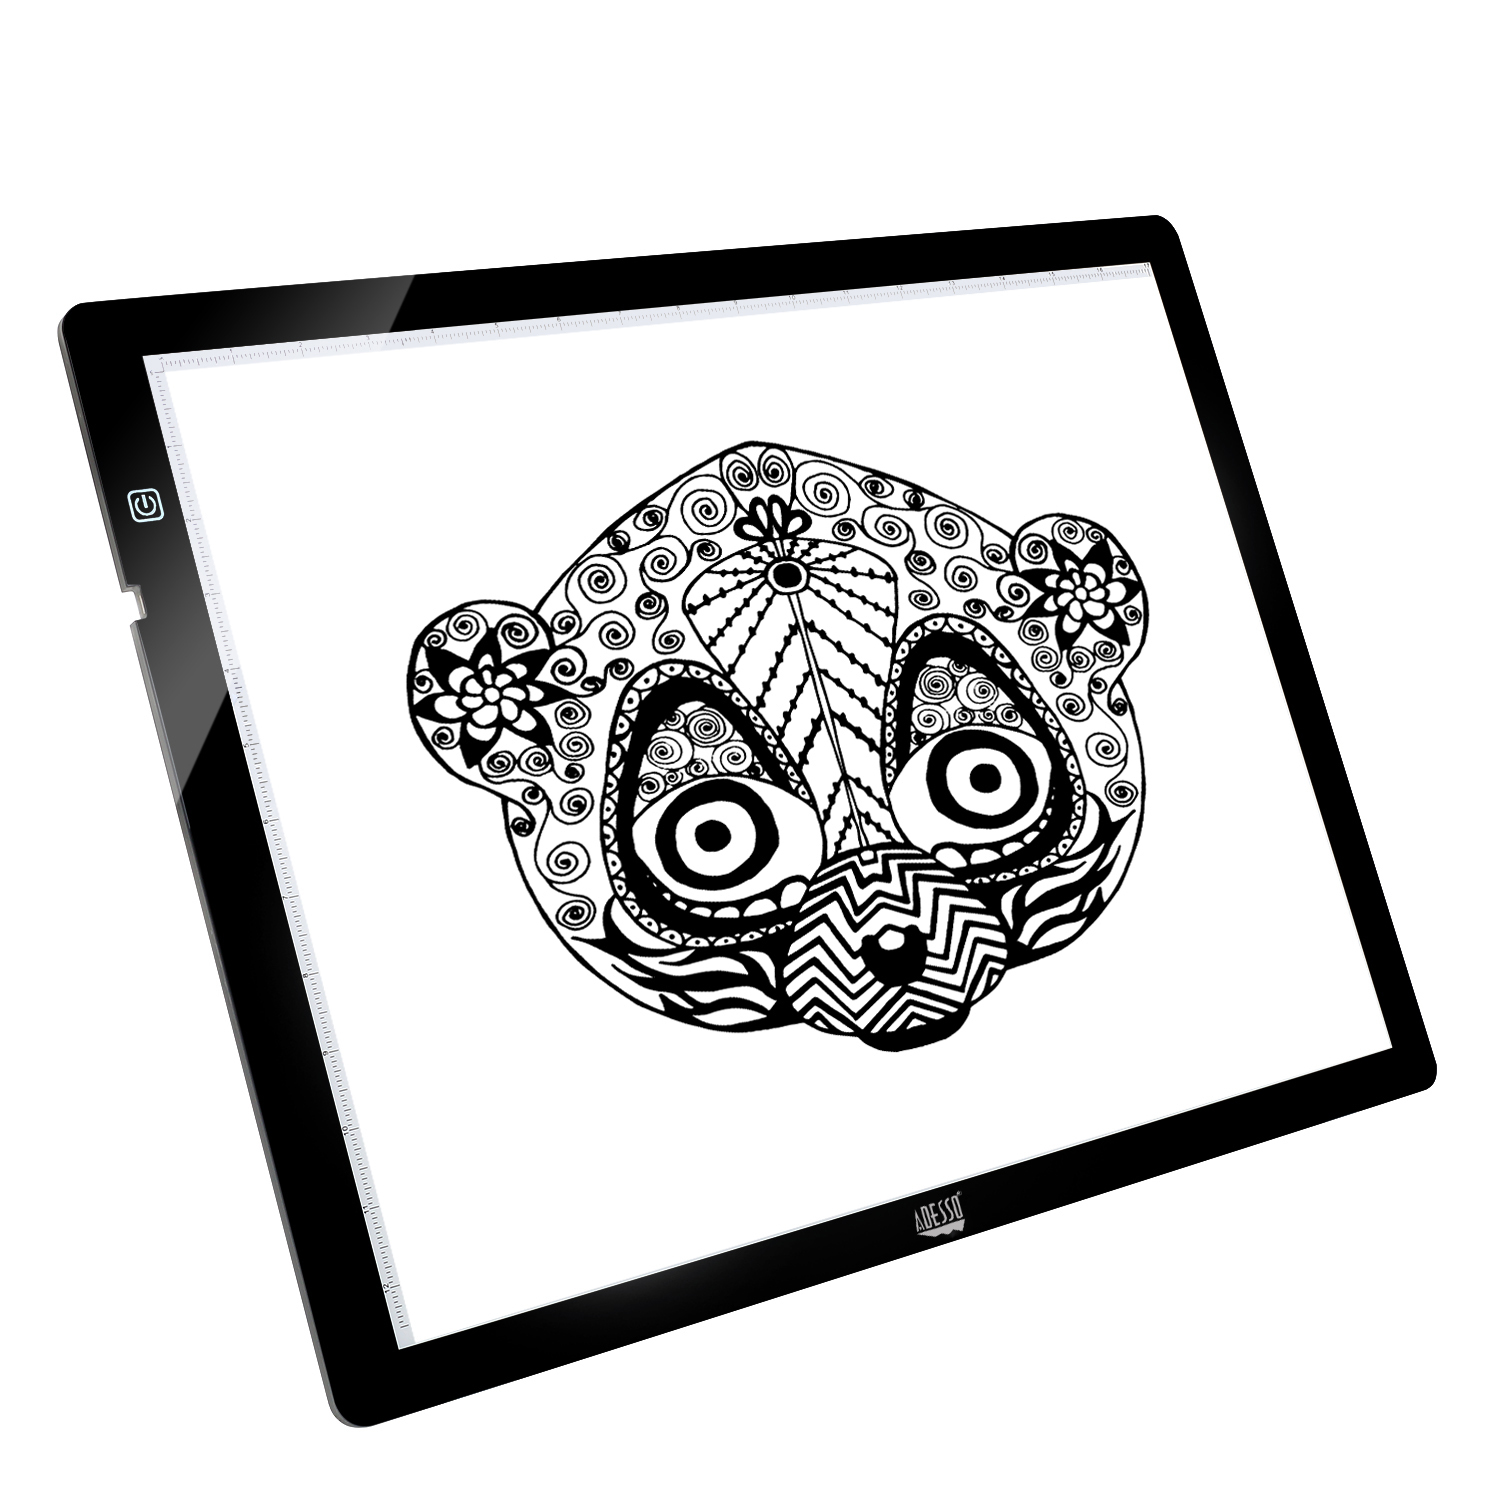 Adesso CyberPad P2 304.8 x 431.8mm Black graphic tablet